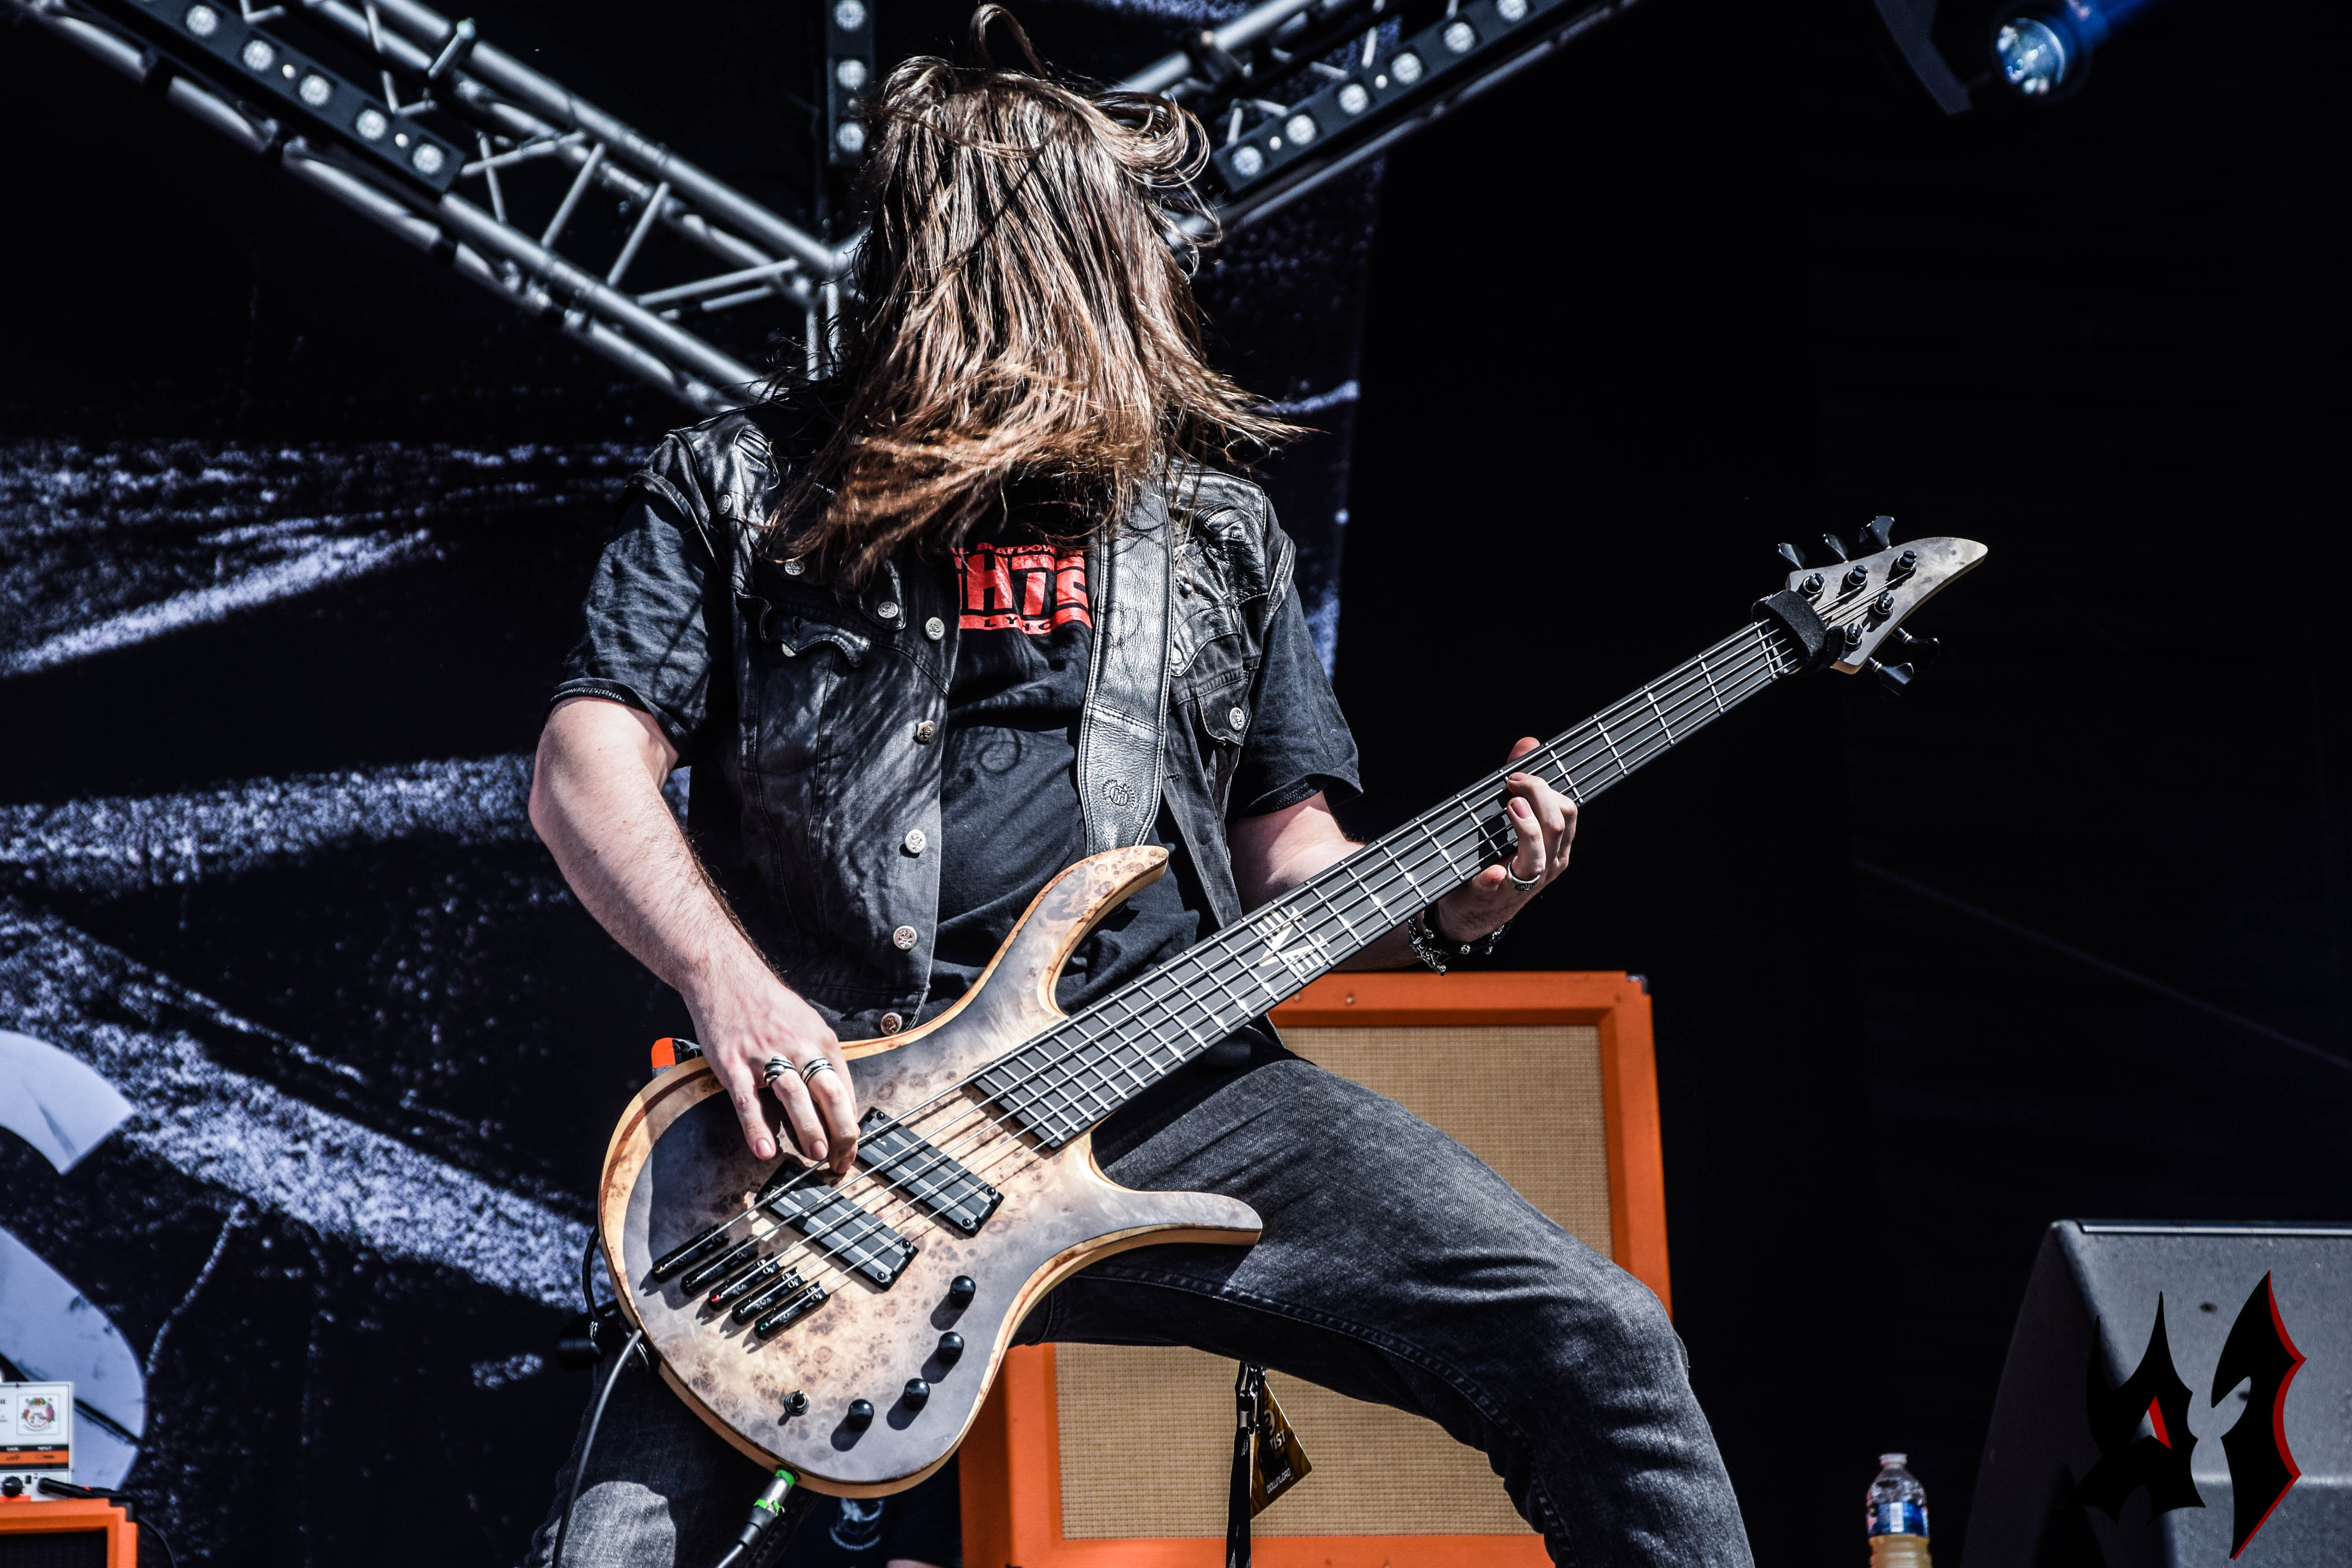 Donwload 2018 – Day 2 - Betraying The Martyrs 5